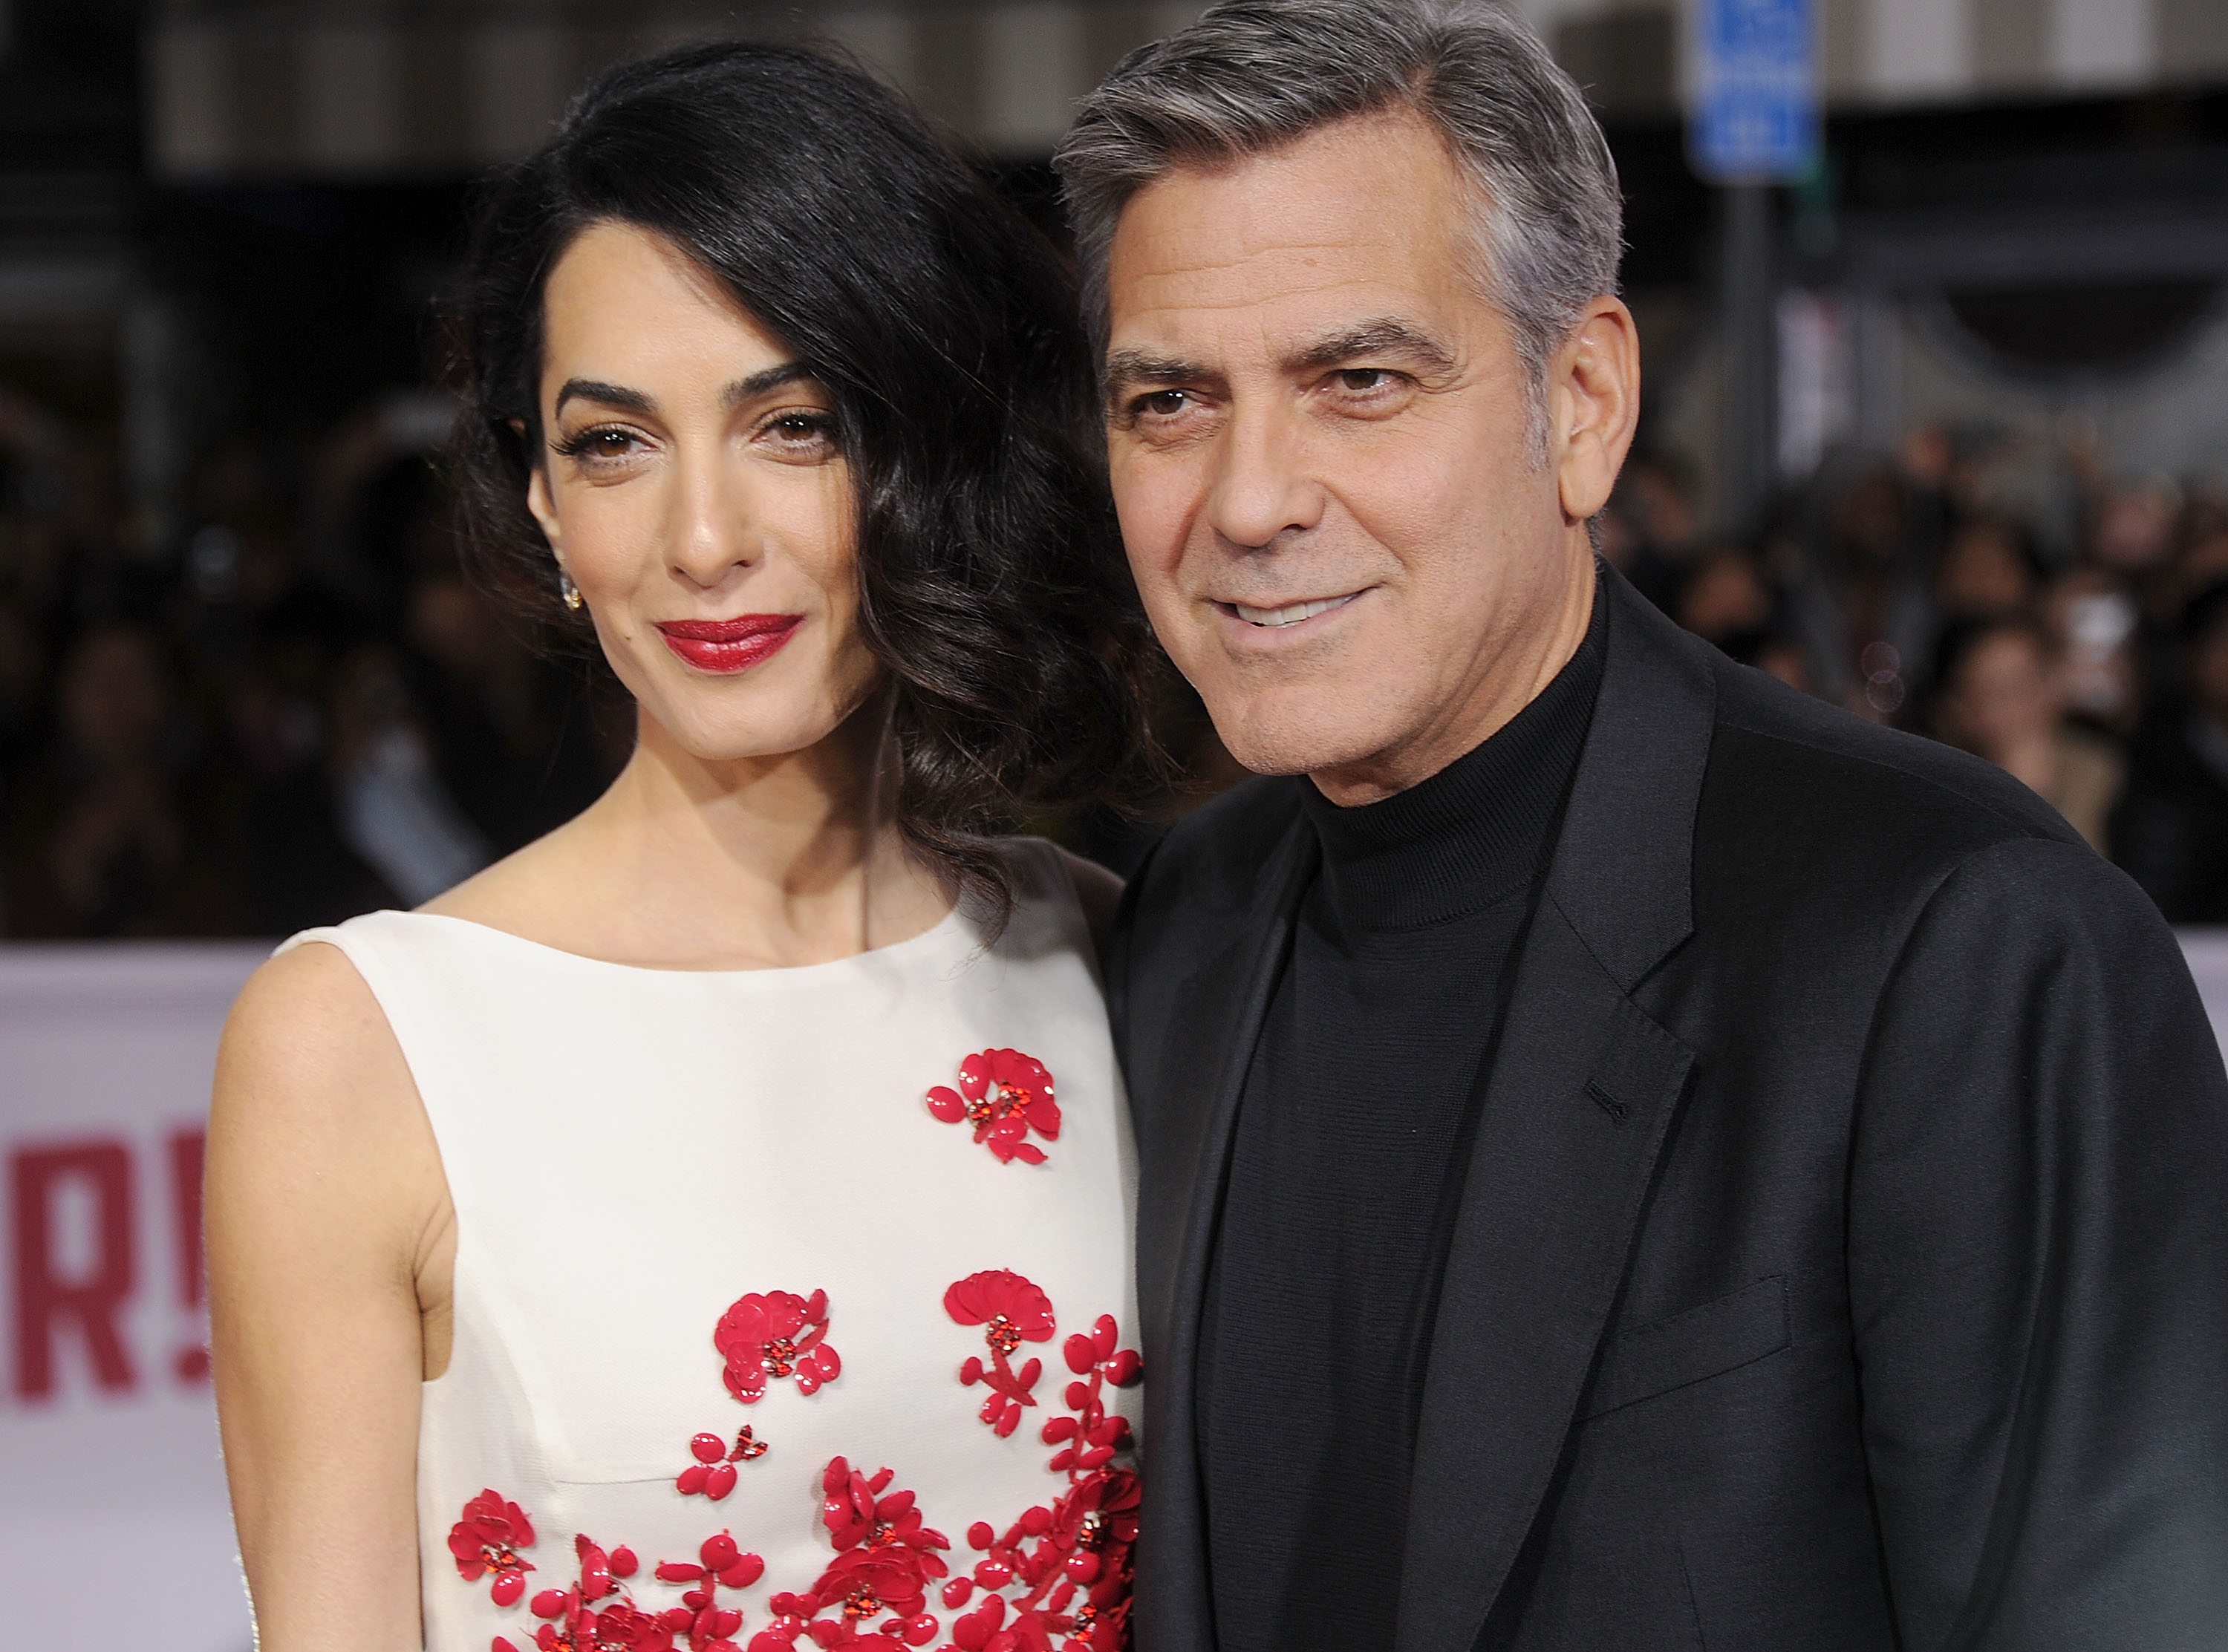 George Clooney arrives at the premiere of Universal Pictures'  Hail, Caesar!  at Regency Village Theatre on February 1, 2016 in Westwood, California.